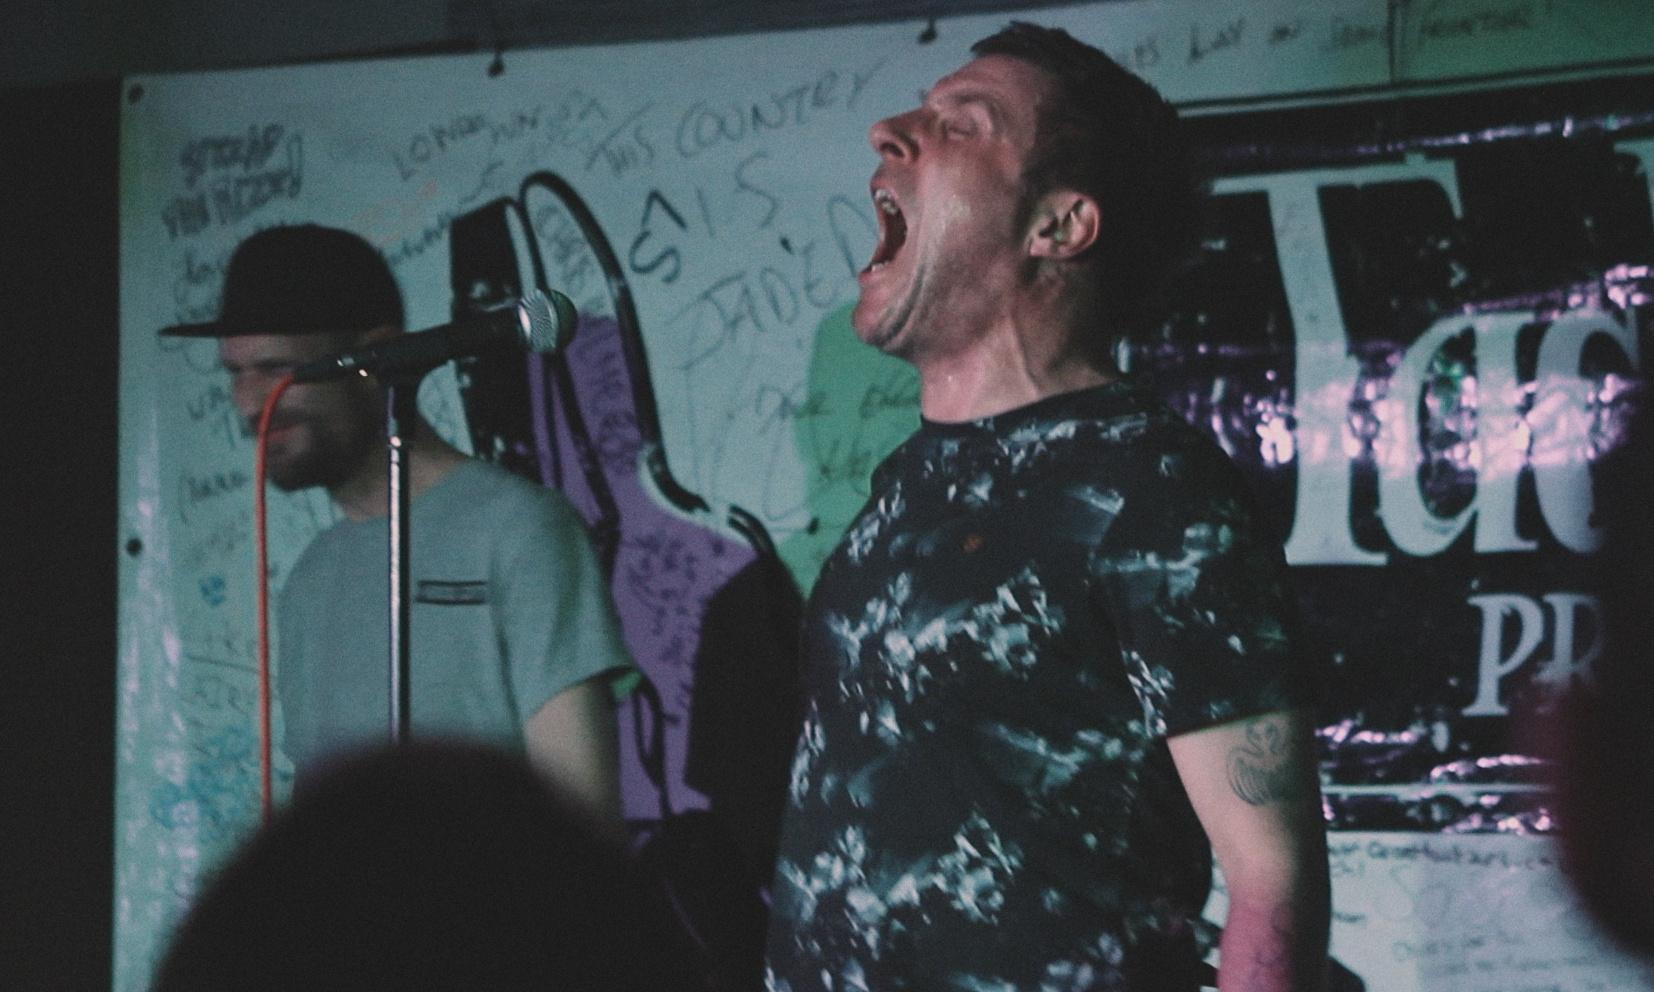 TV tonight: are Sleaford Mods 'the world's greatest rock'n'roll band'?